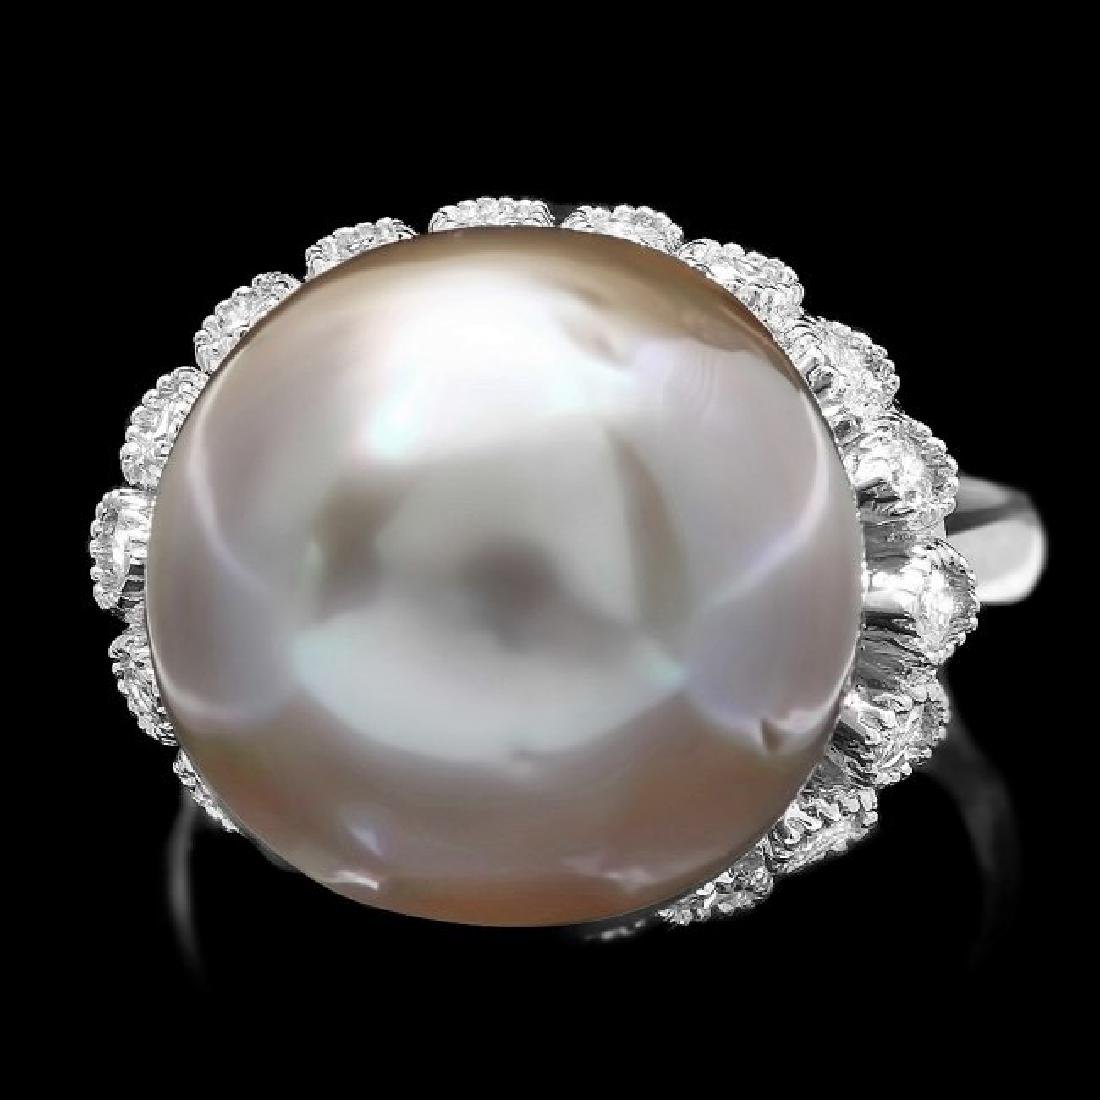 14k Gold 14 X 14mm Pearl 0.70ct Diamond Ring